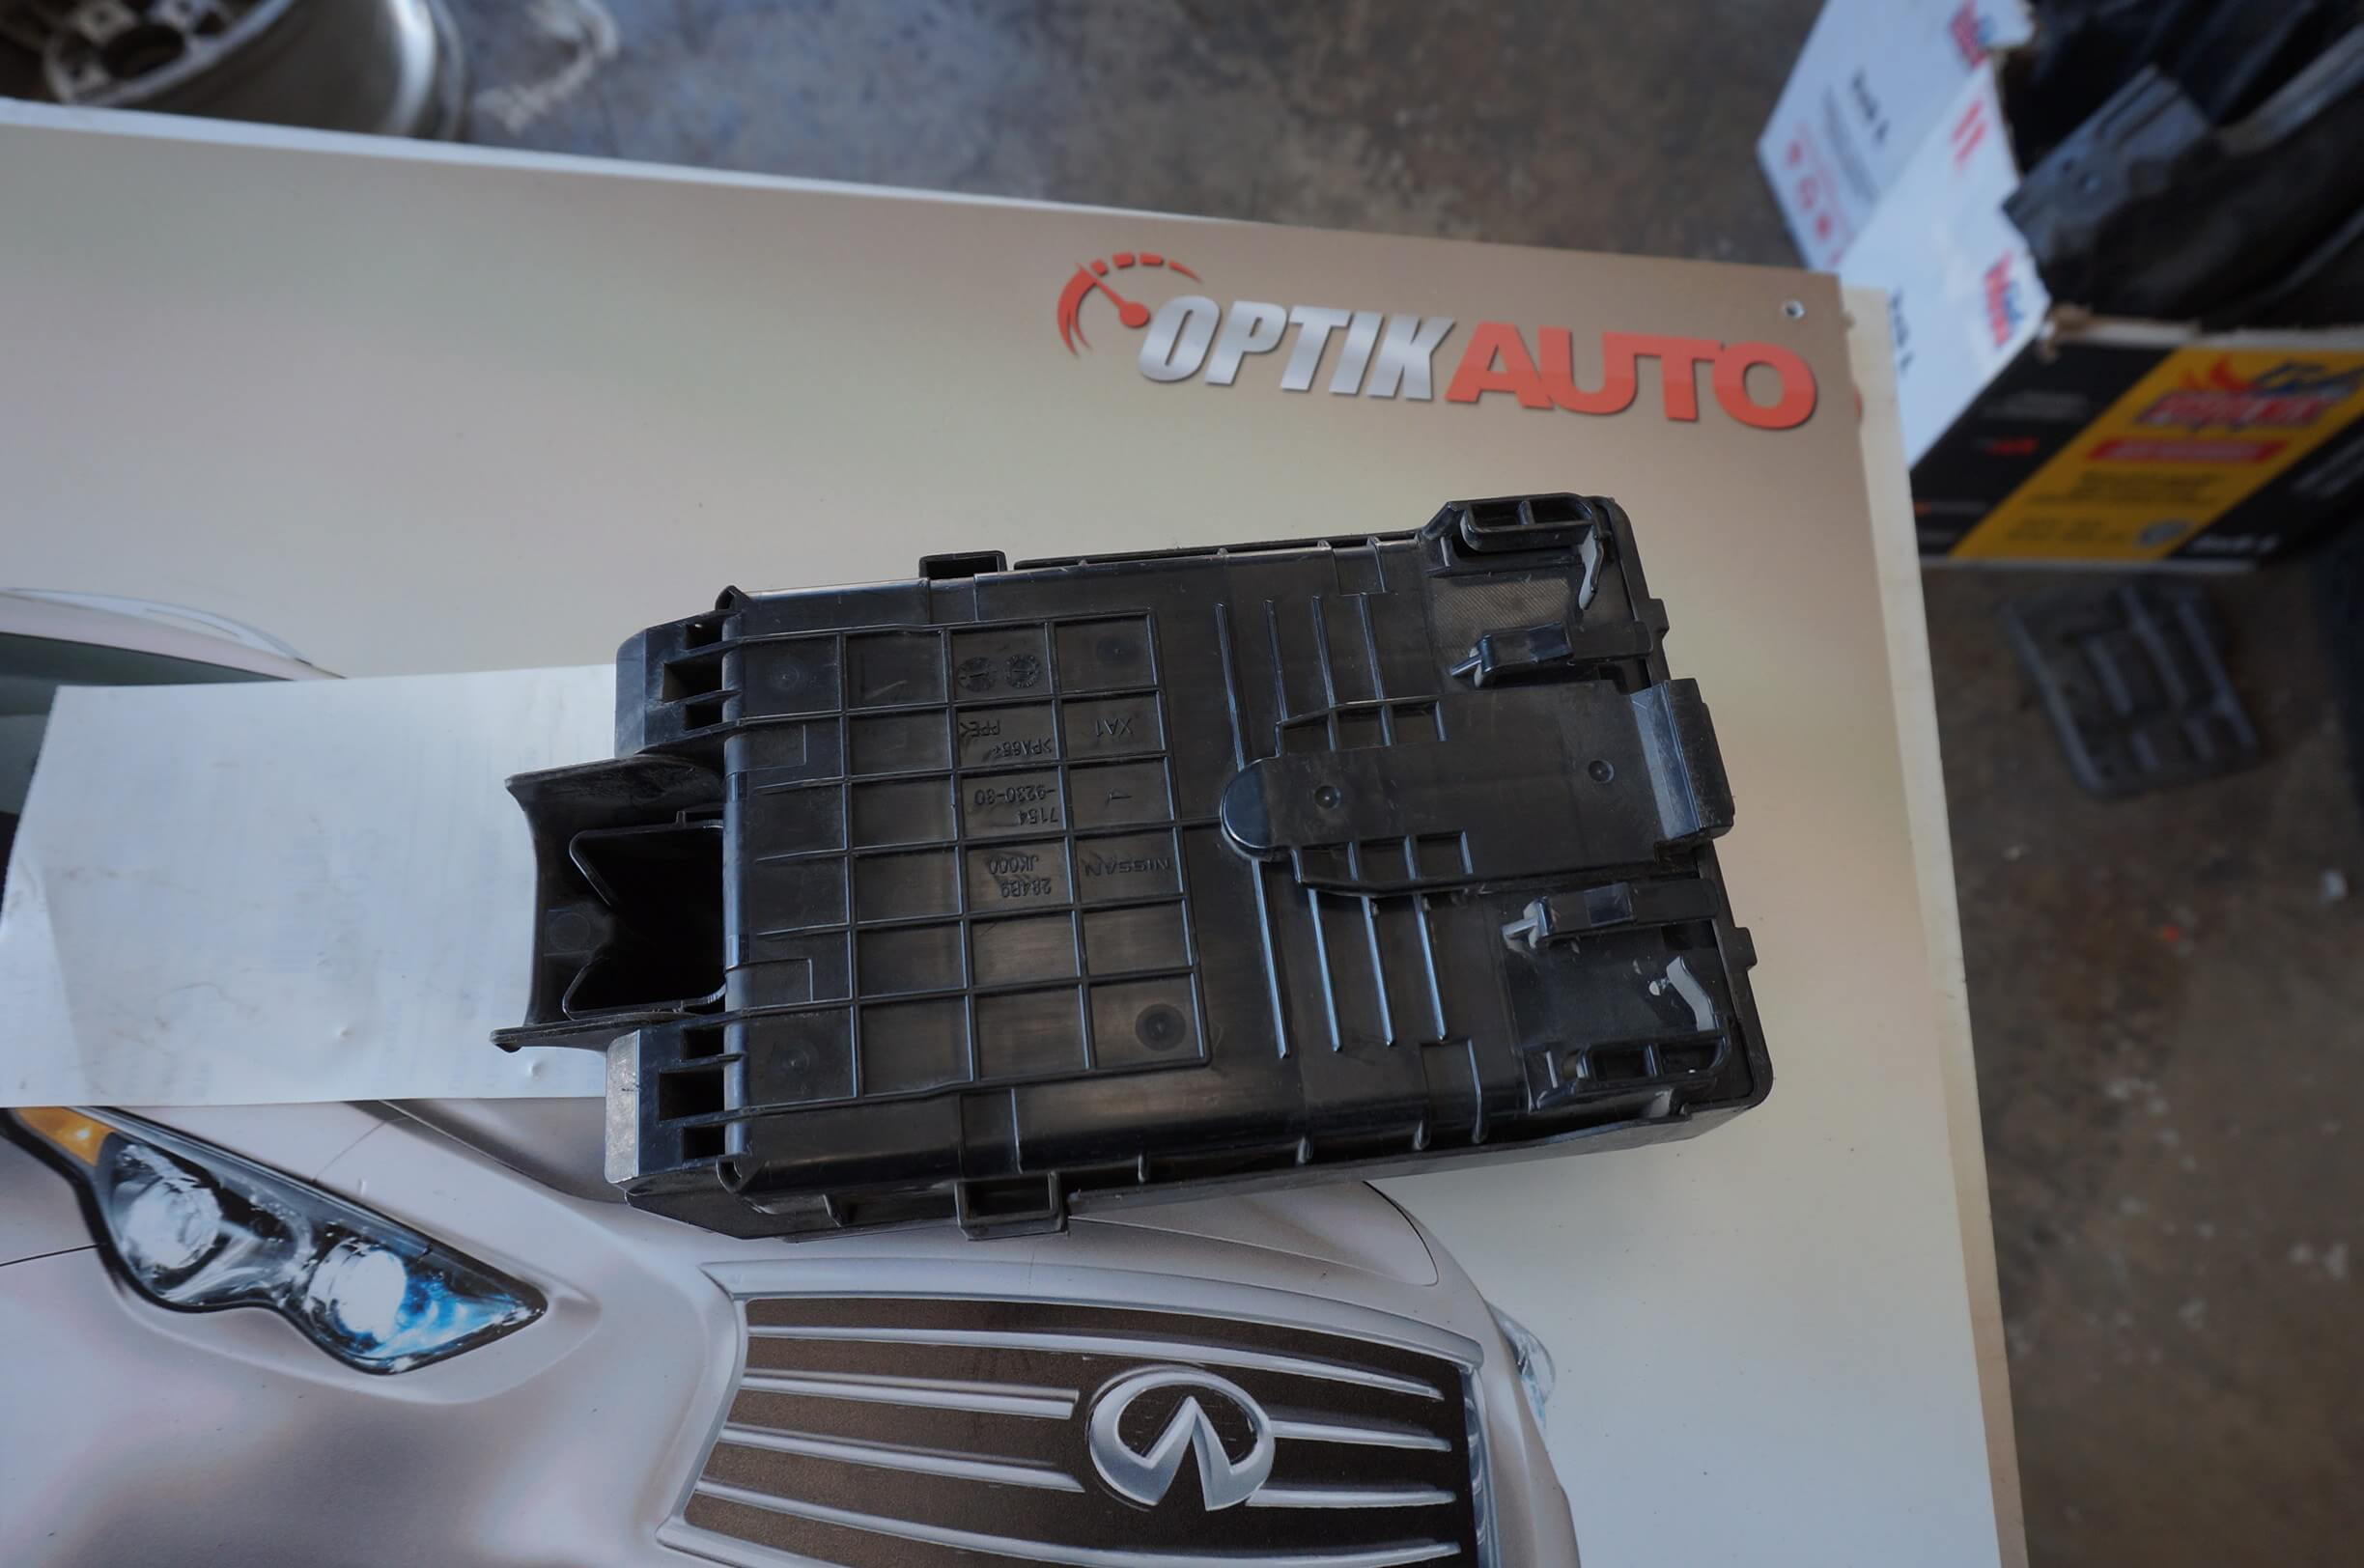 2003 Infiniti G35 Fuse Box Location